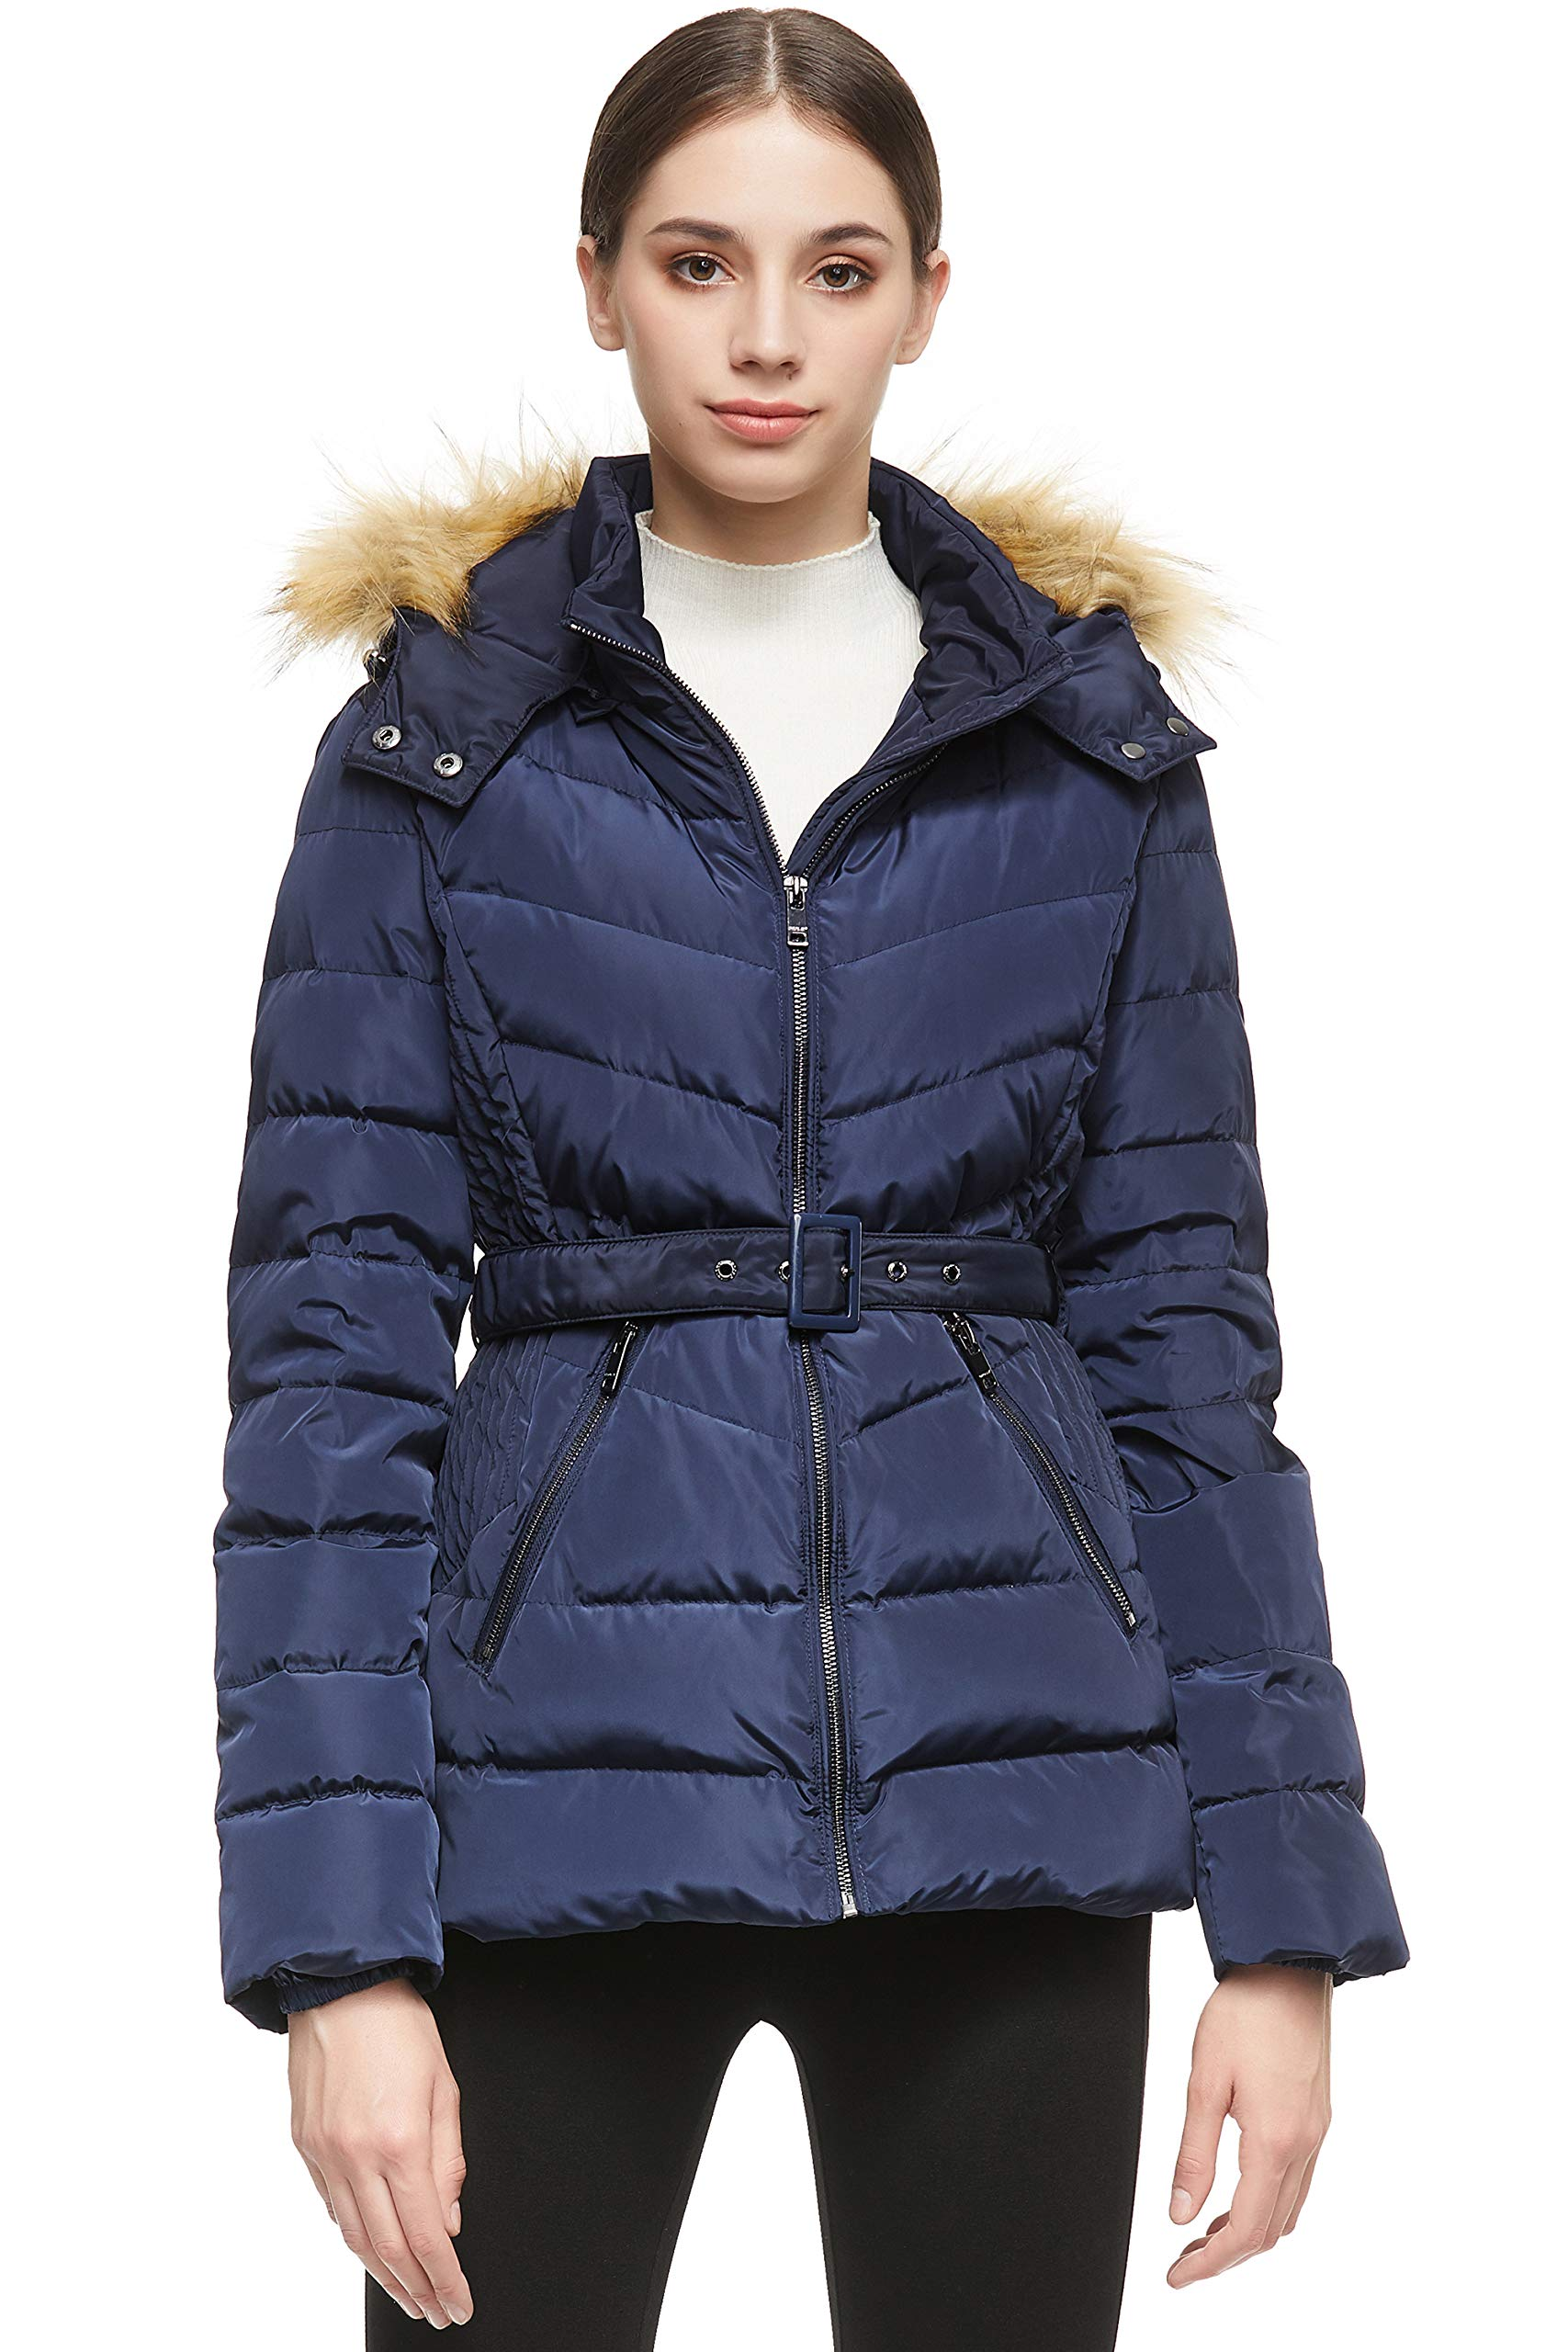 Orolay Women's Short Down Coat with Removable Elastic Belt